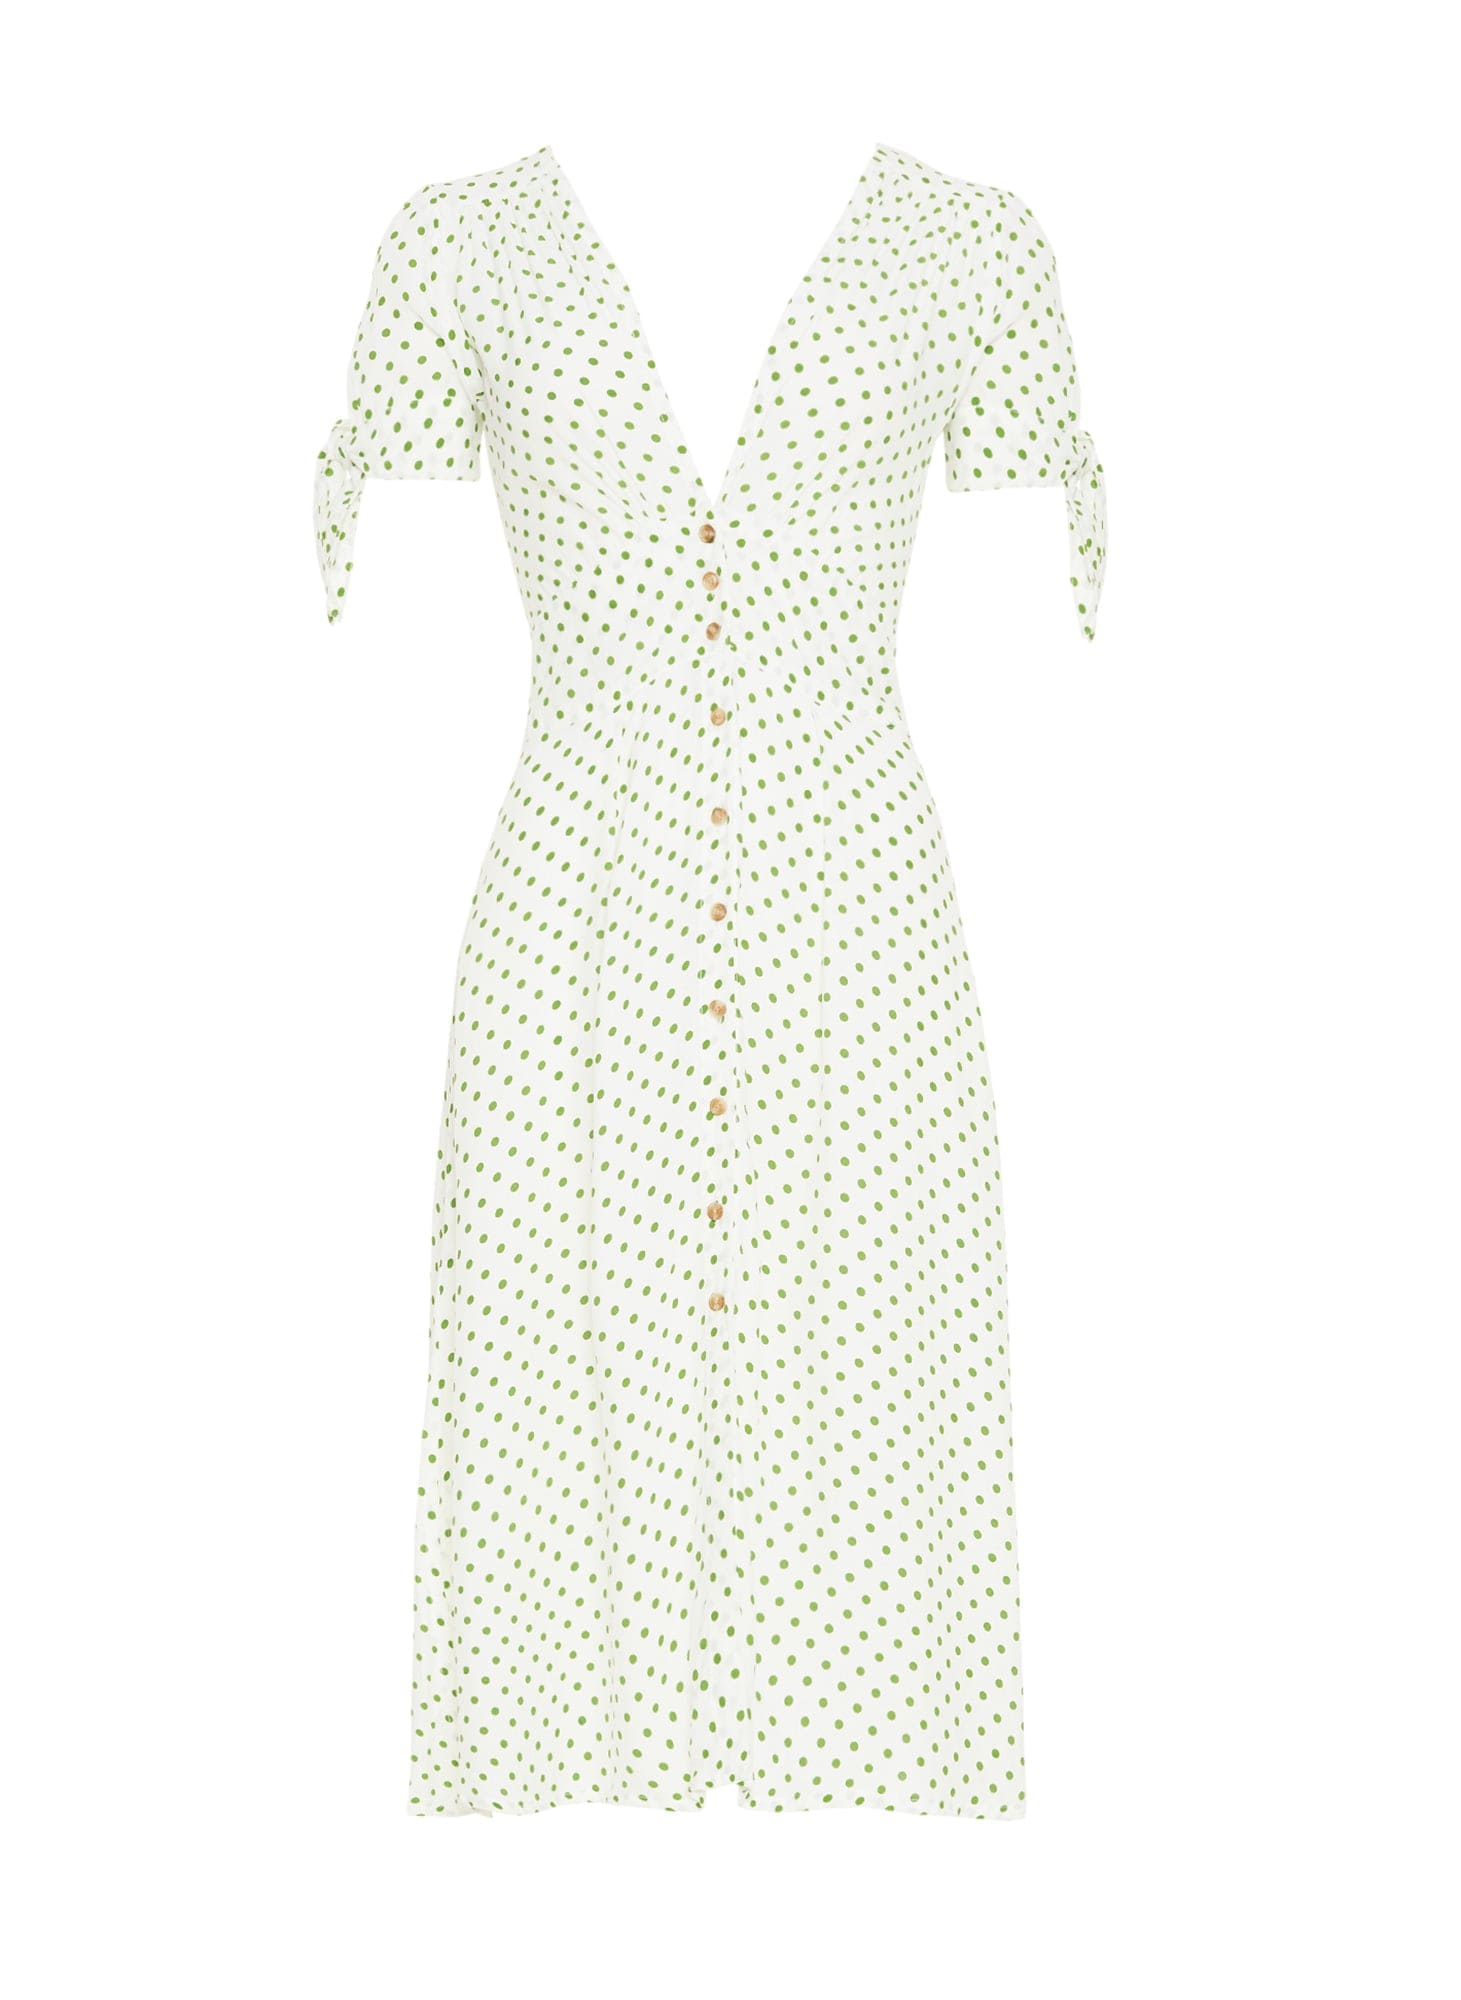 LULA DOT PRINT - GREEN - BILLIE MIDI DRESS